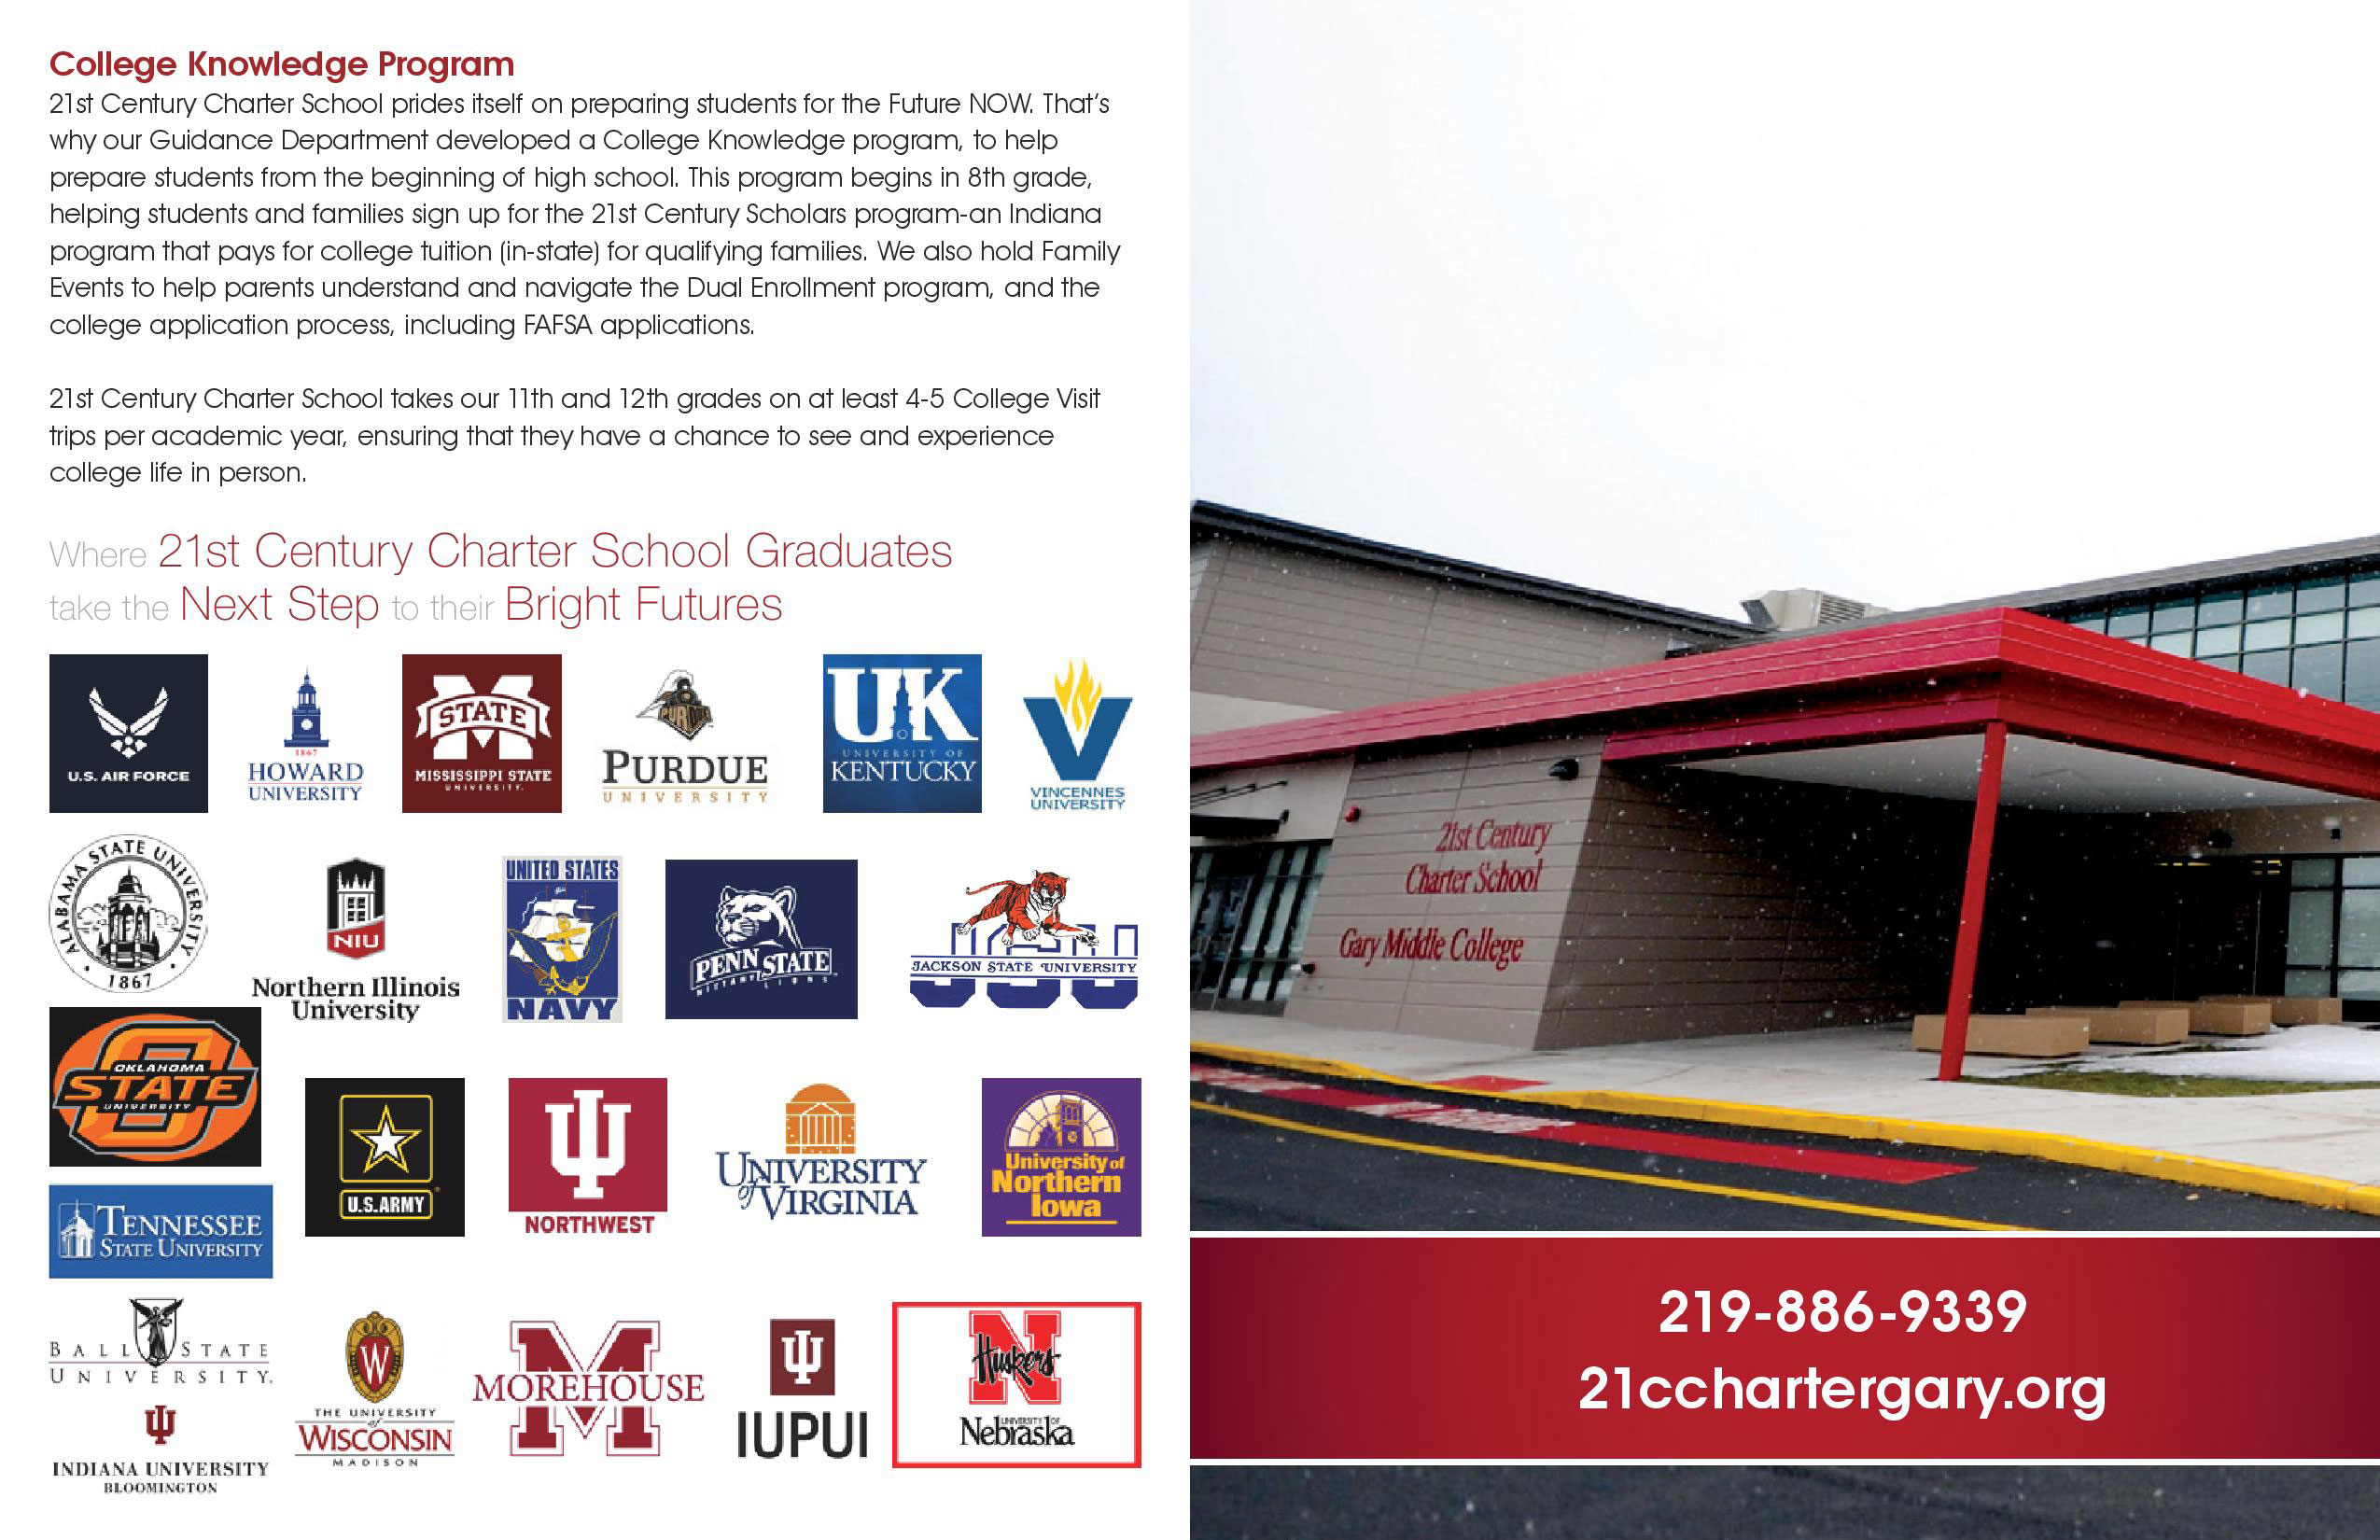 College Knowledge Program - 21st Century Charter School prides itself on preparing students for the future NOW.